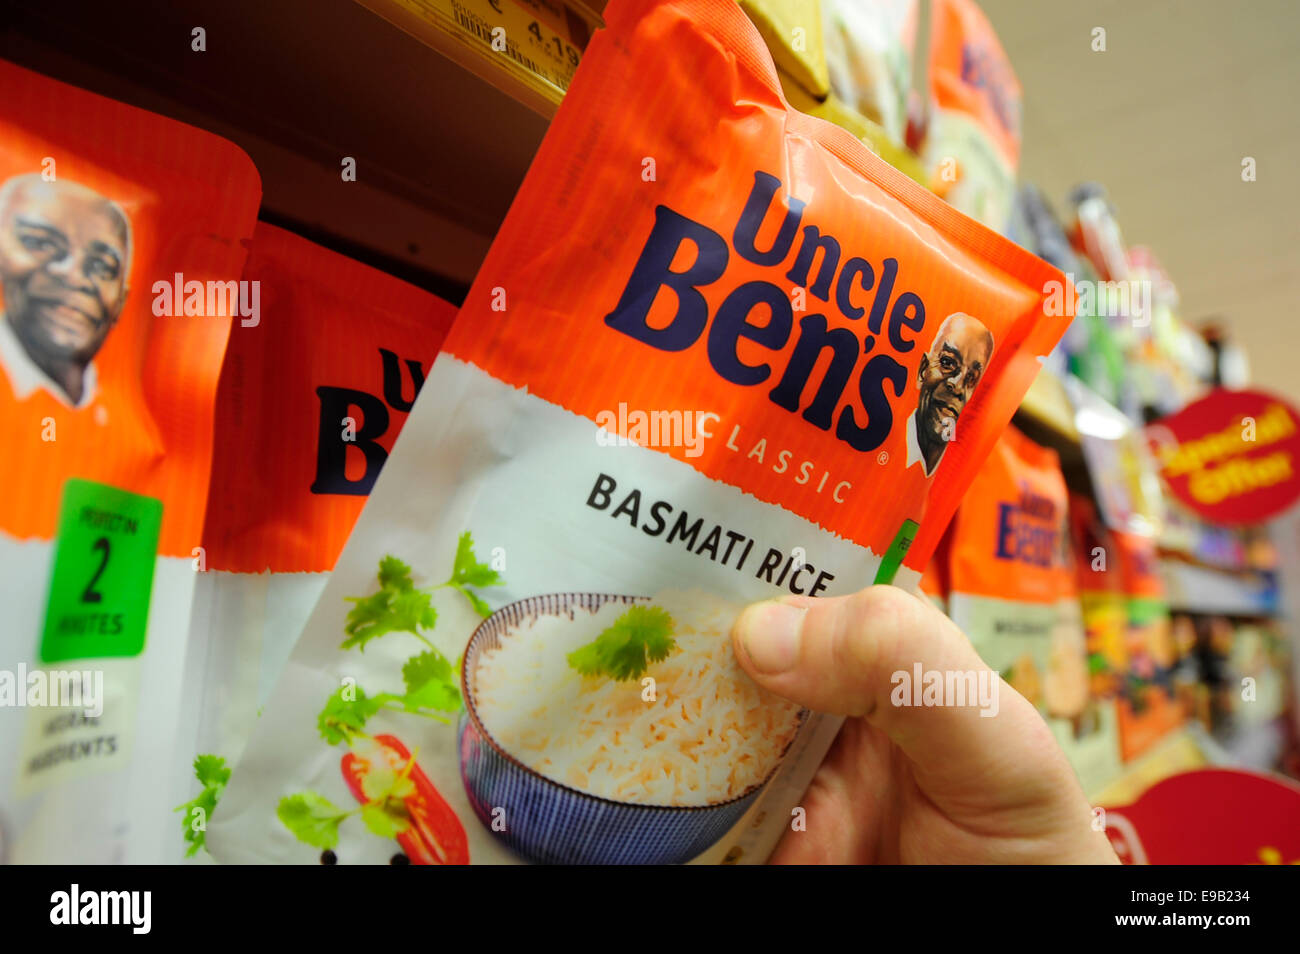 uncle bens product been taken from the shelf (Newscast)(Model Released) - Stock Image